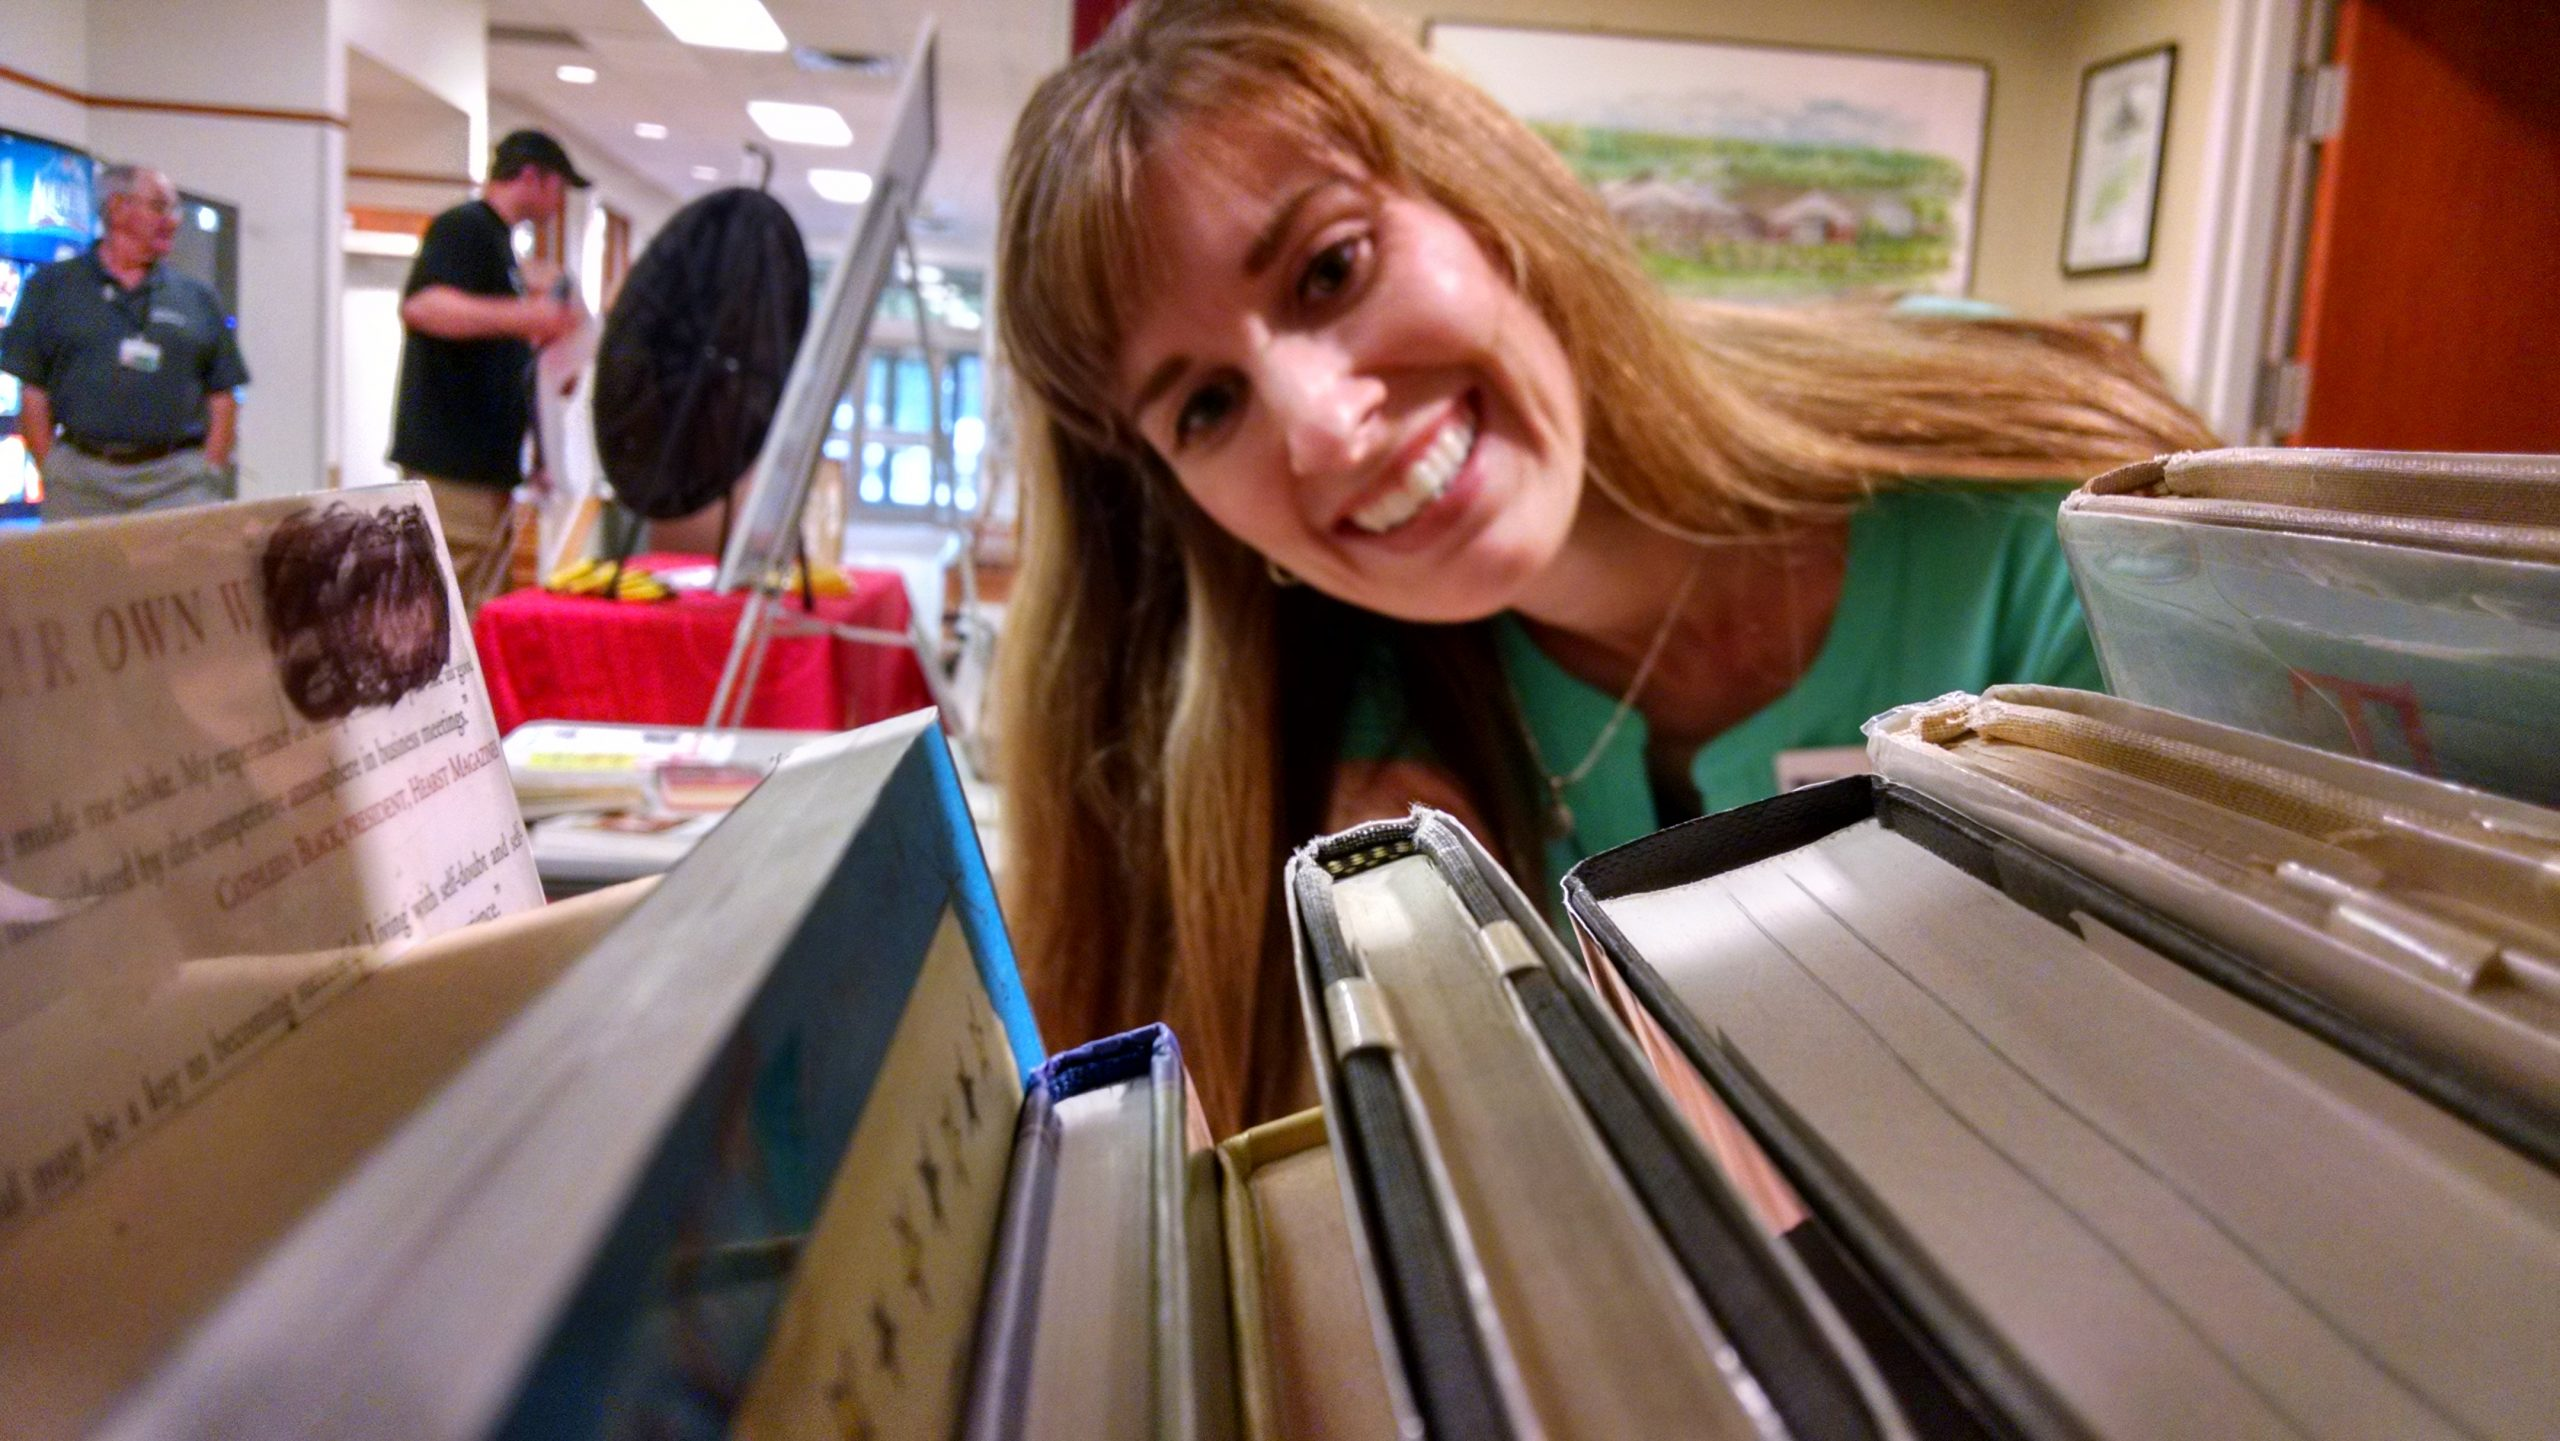 A music lover browses the Pop-Up Library during a Mentor Rocks concert.